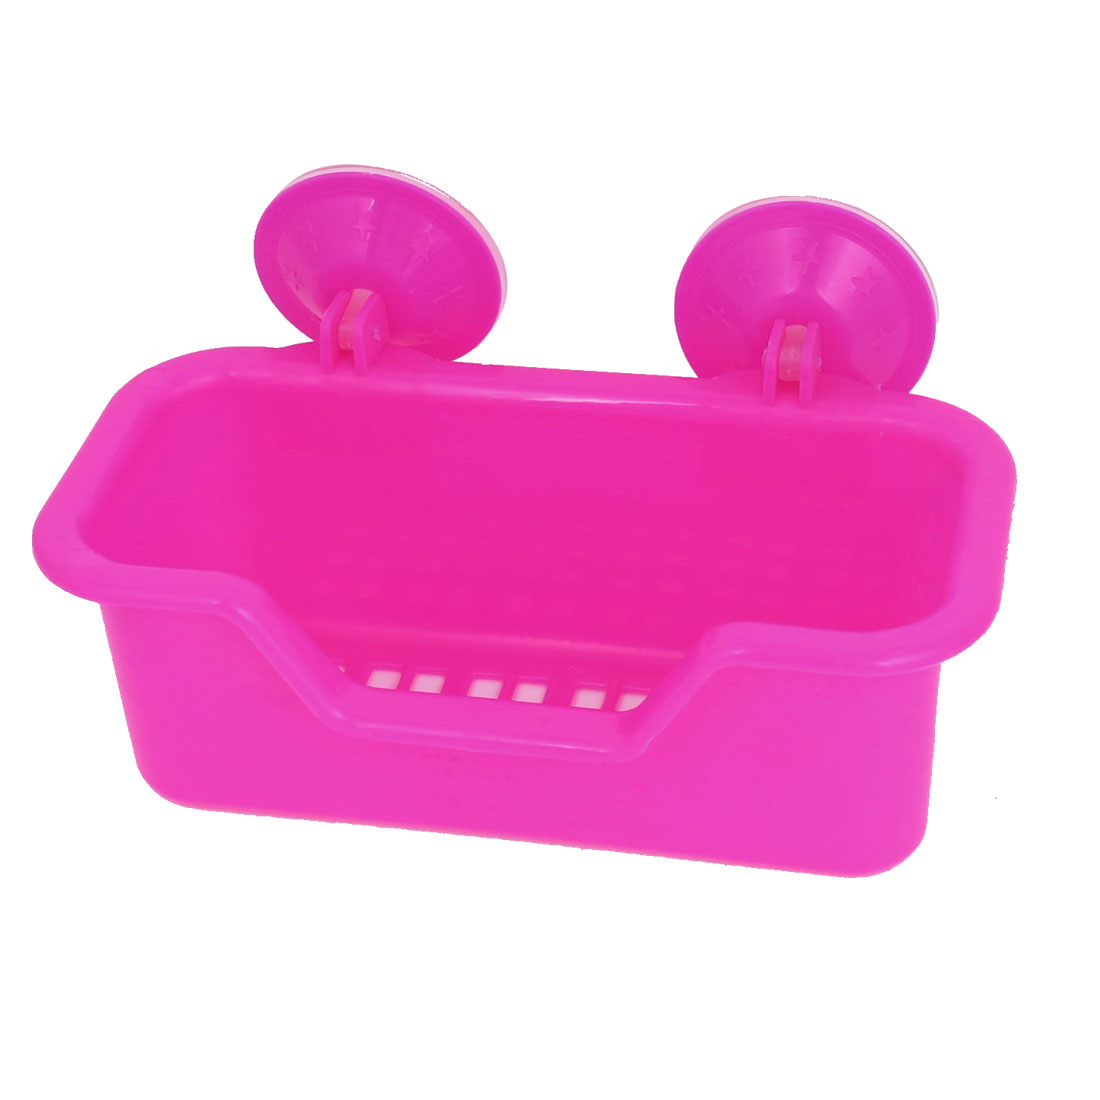 Bath Wall Basket Strong Suction Cup Absorption Holder Plastic Shelf Fuchsia